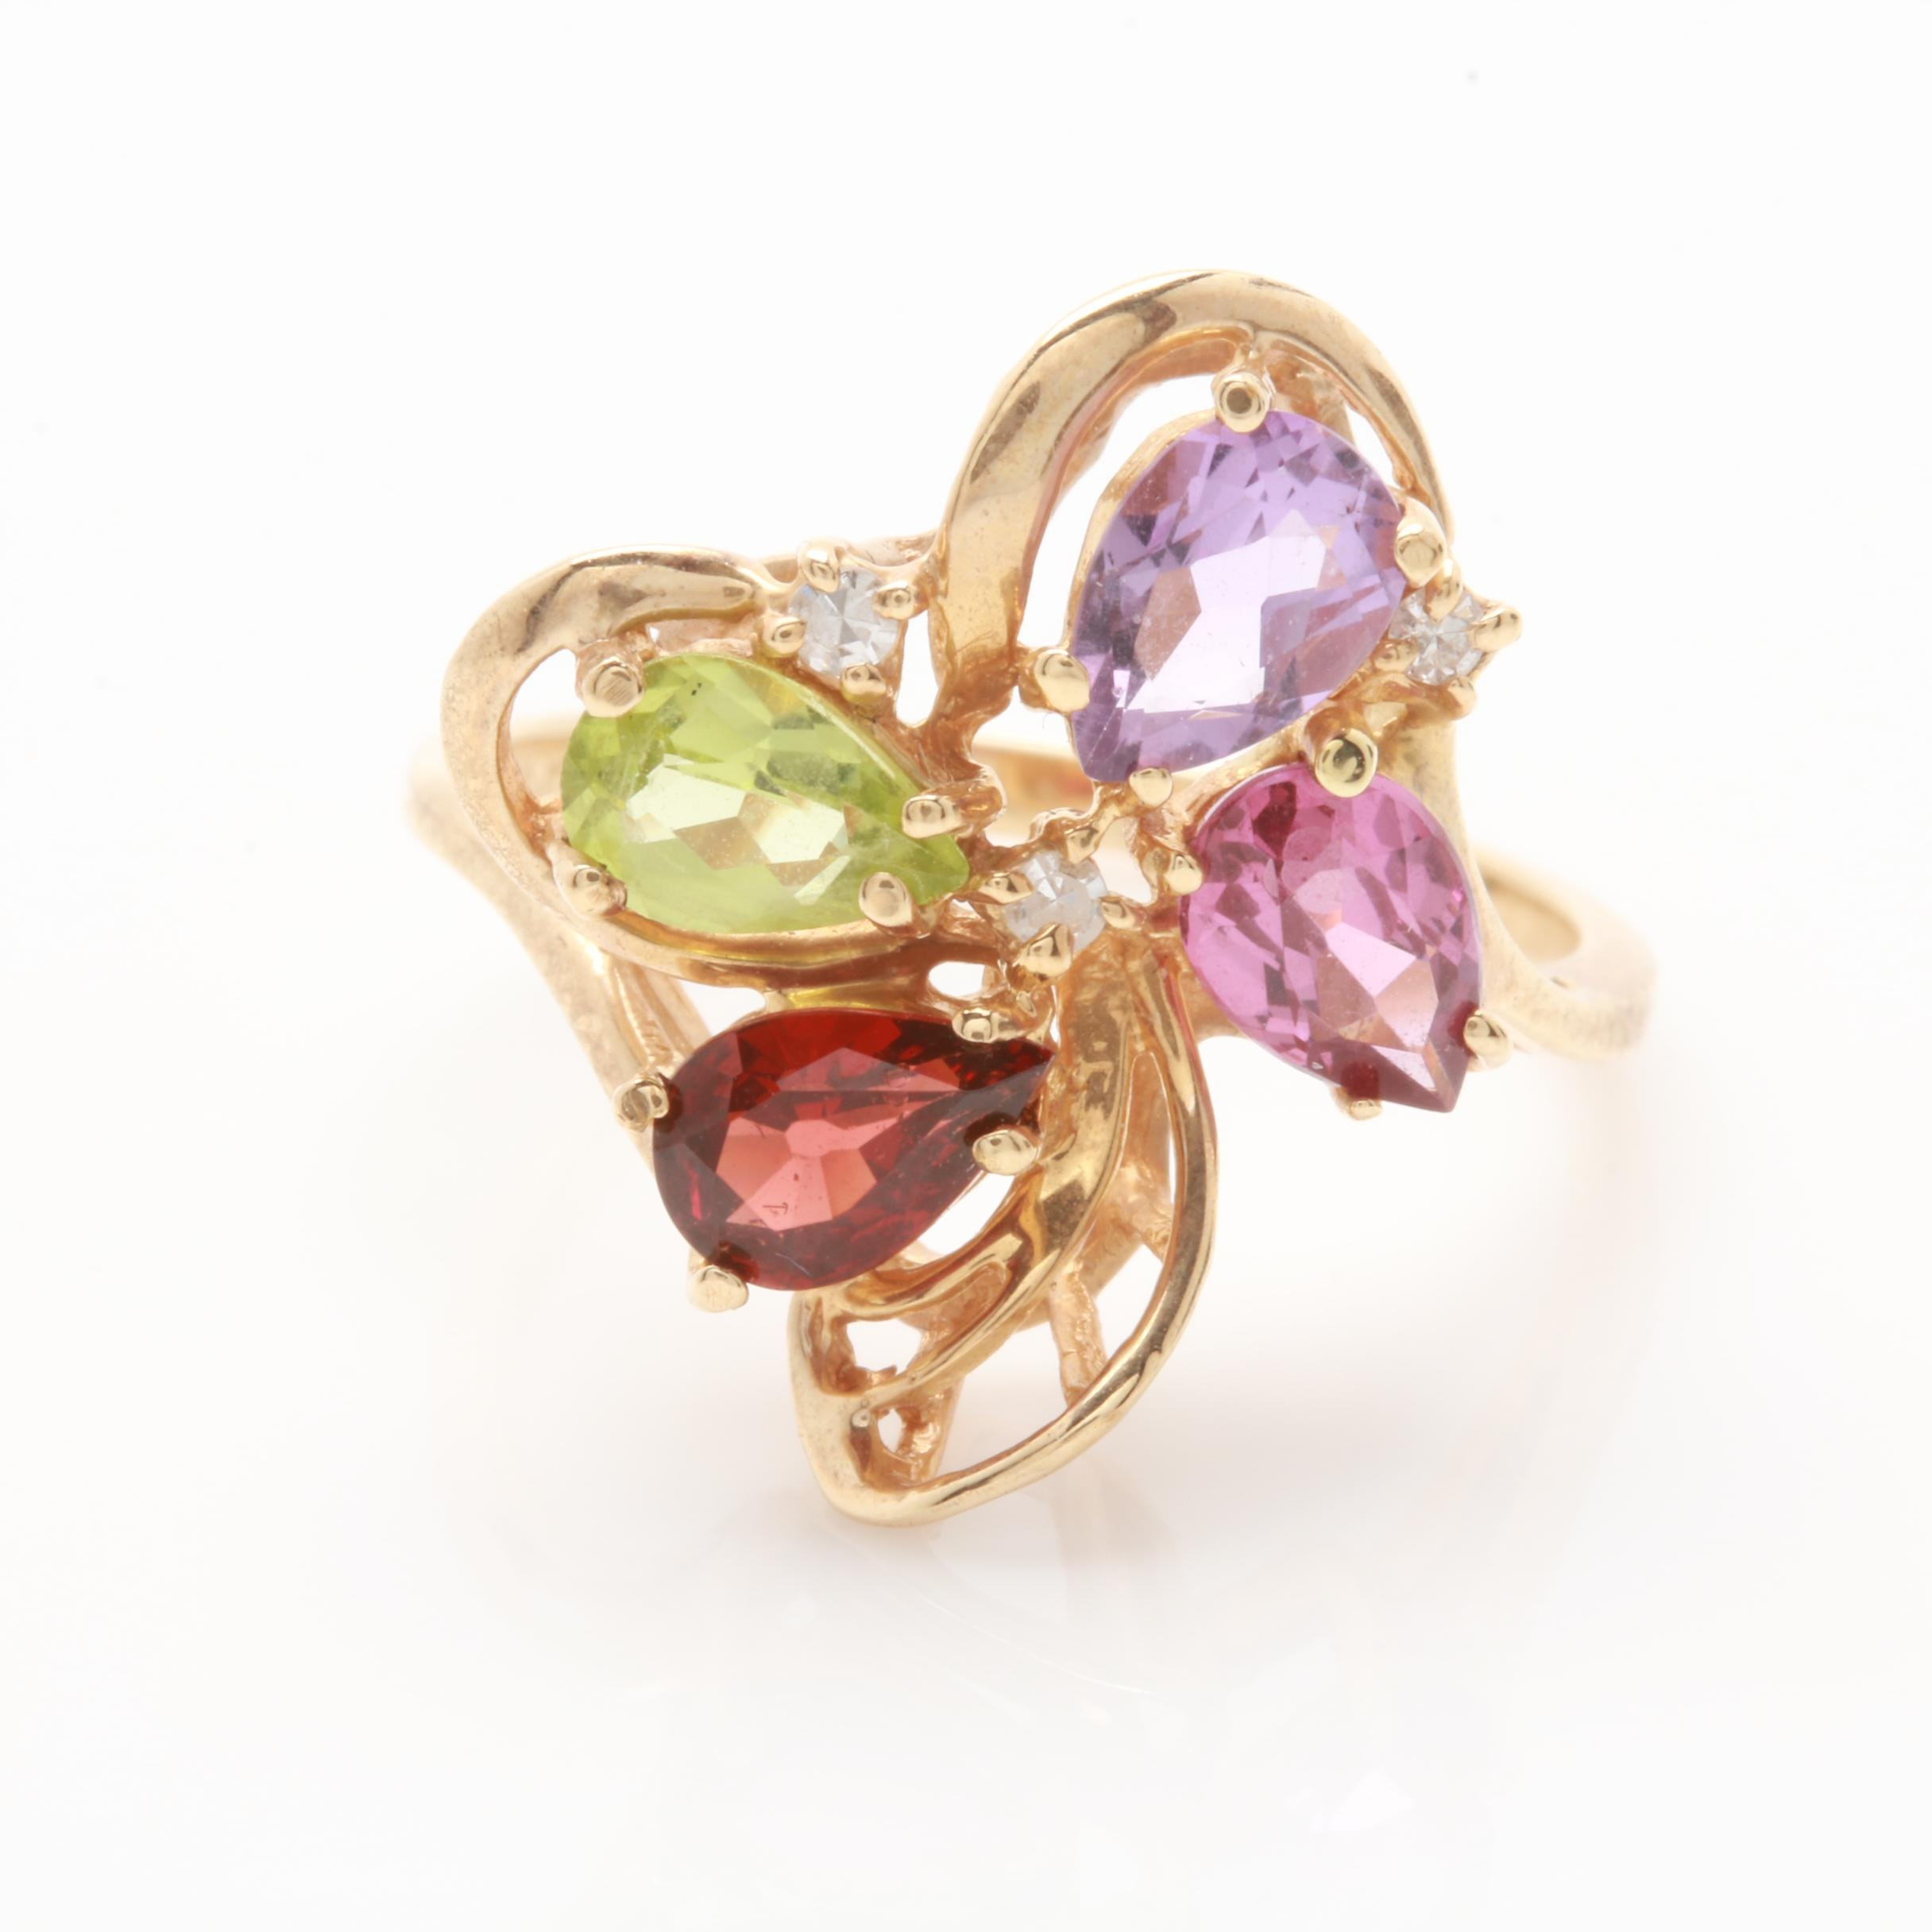 10K Yellow Gold Amethyst, Diamond and Gemstone Ring